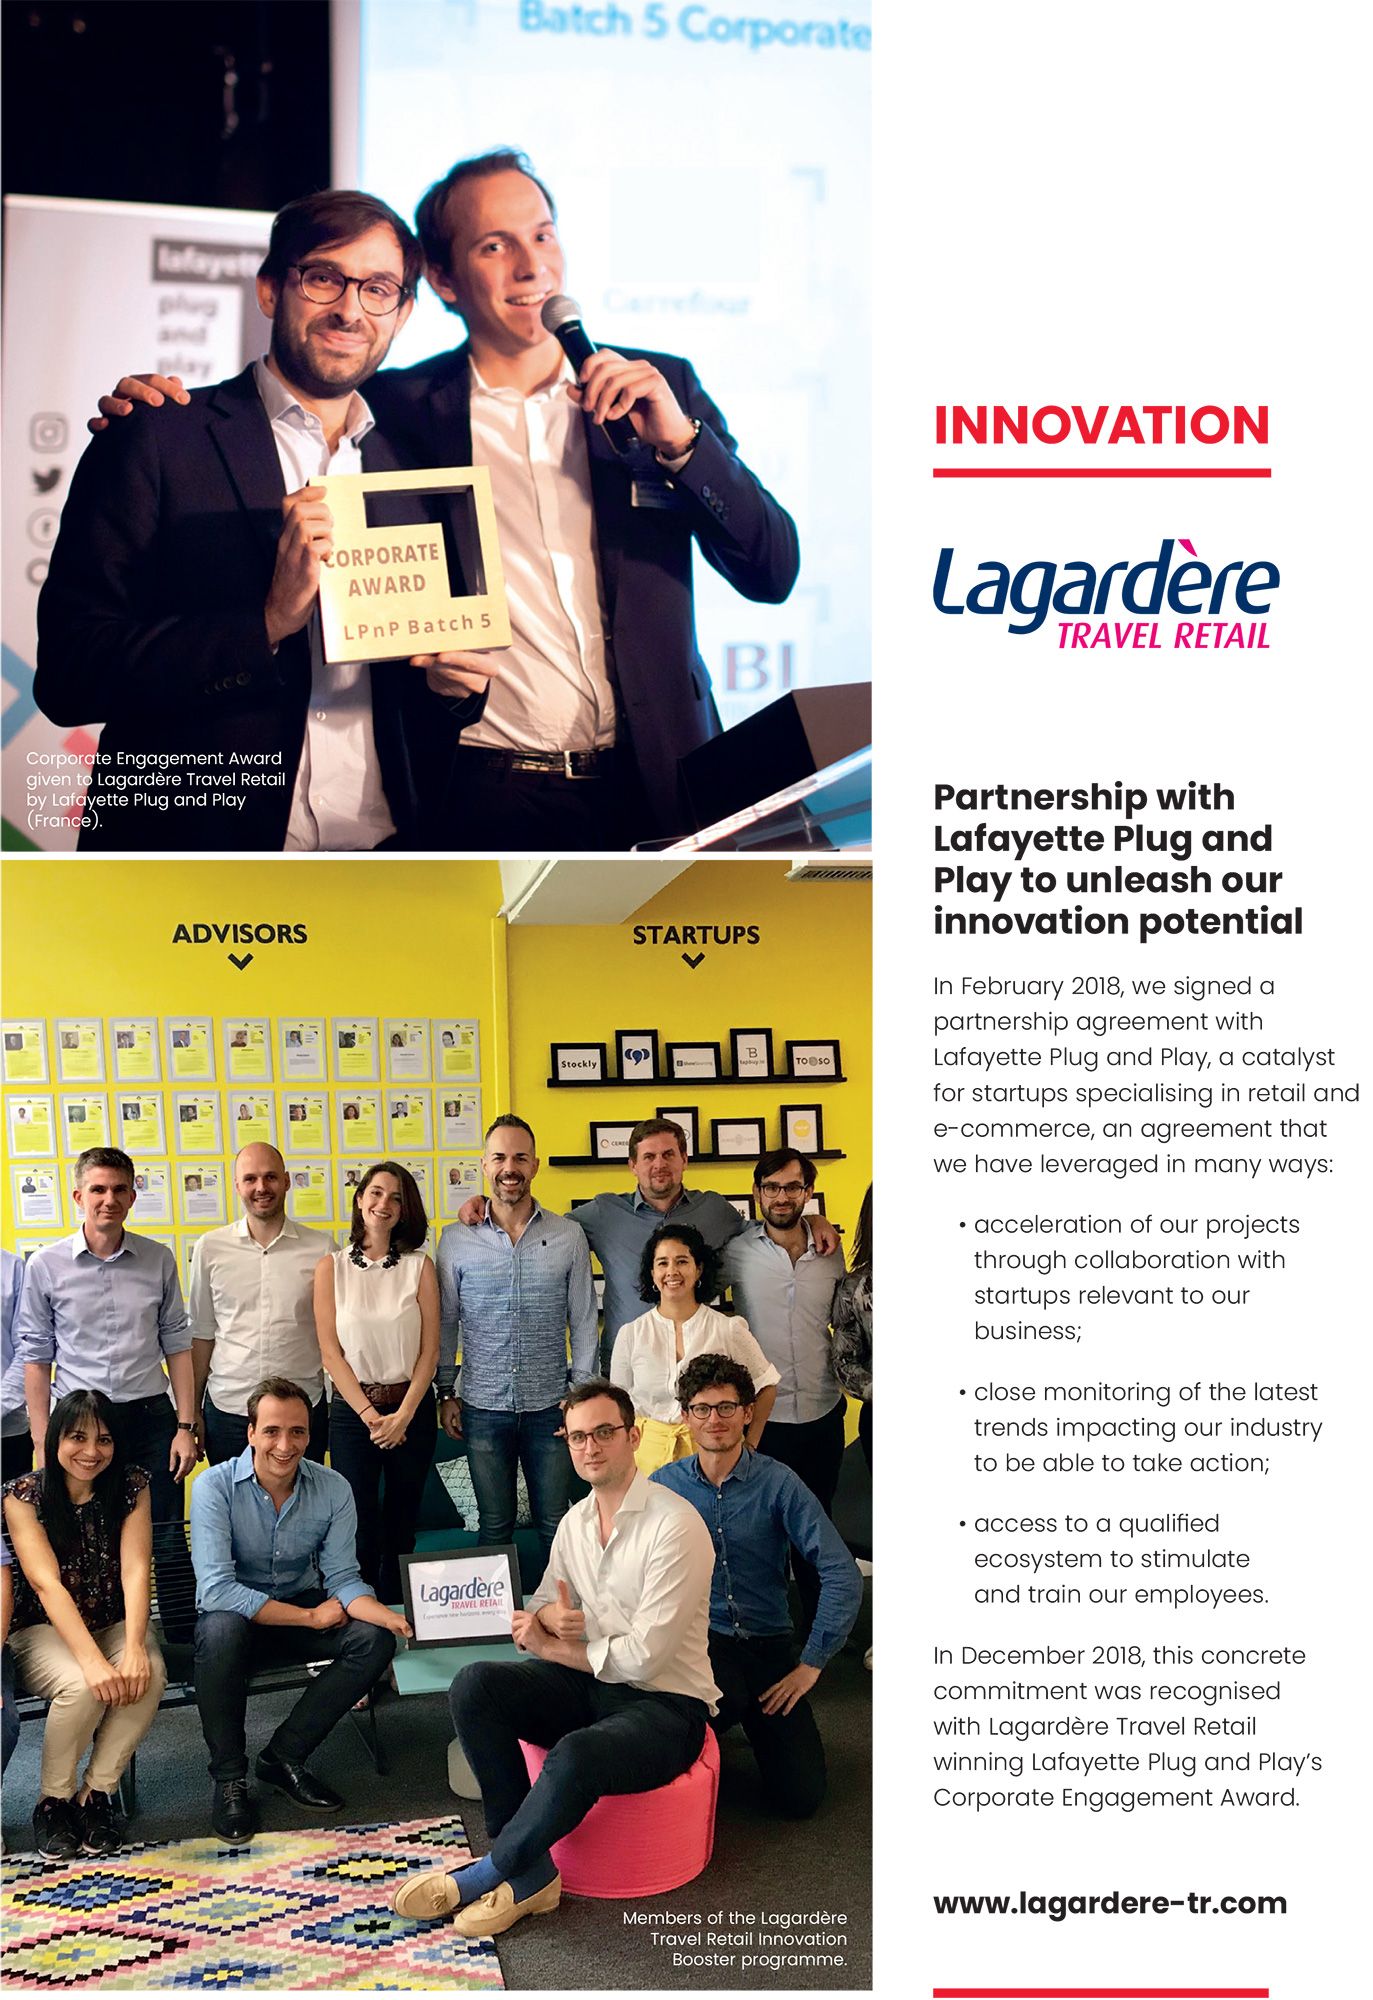 Lagardère Travel Retail: Innovation